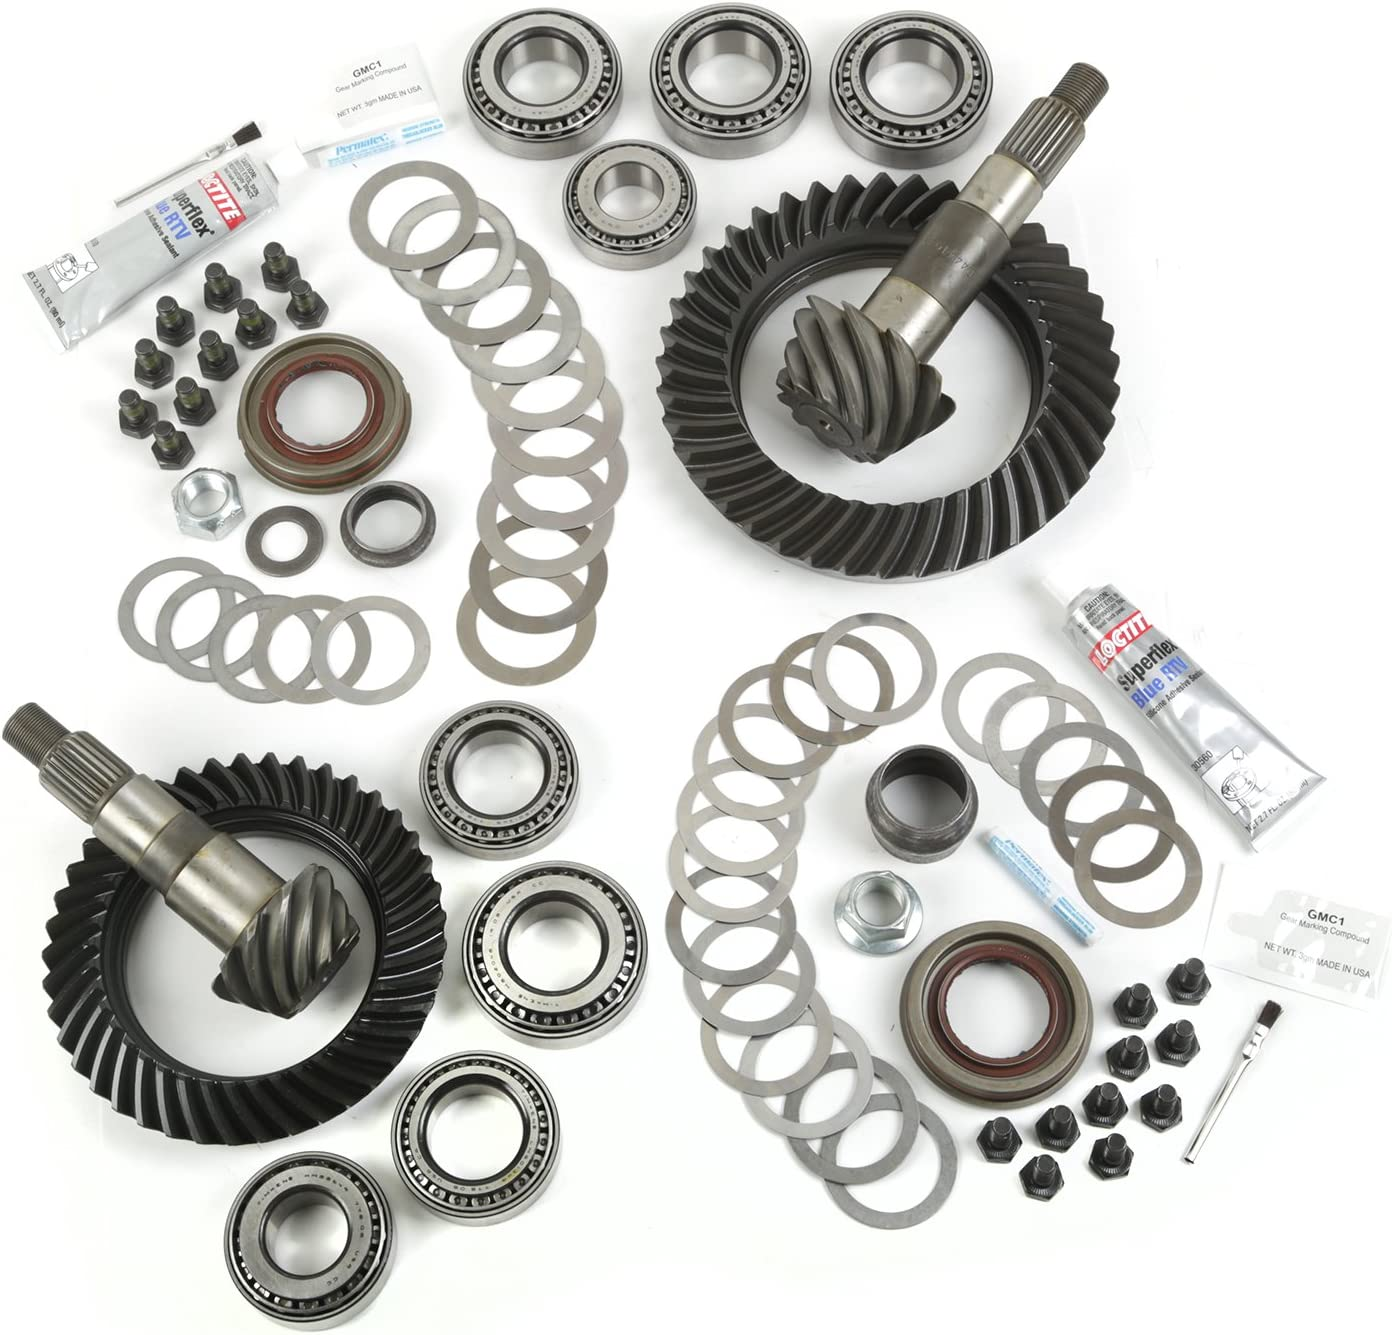 B00KVDZOSY Alloy USA 360002 4.10 Ratio Ring and Pinion Kit for Dana 30/Dana 44 Axles 81IfLbdXbgL.SL1500_